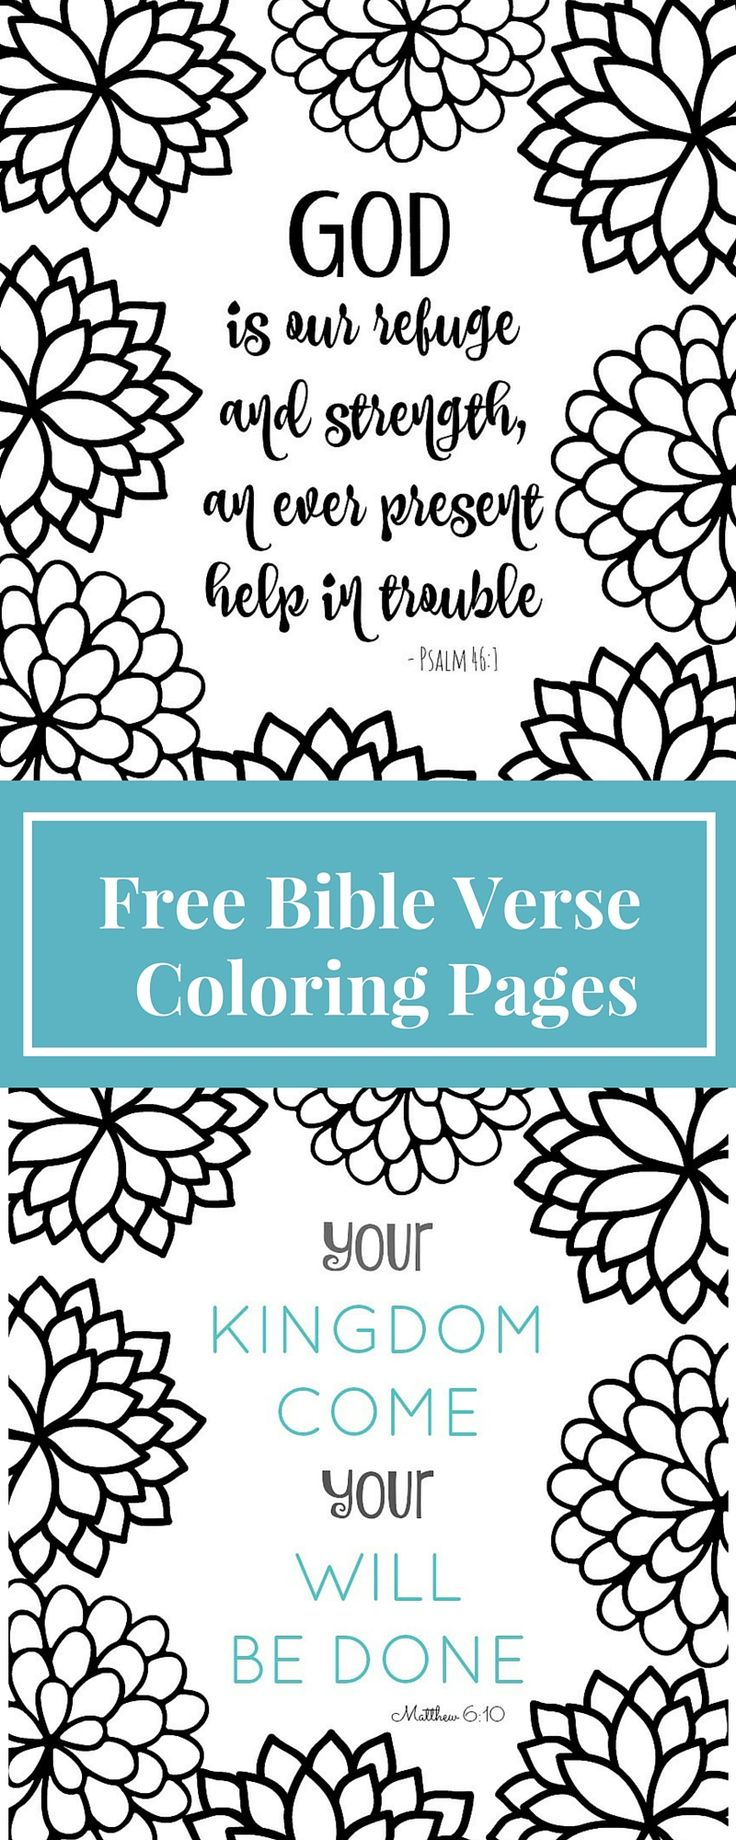 coloring pages are for grown ups now these bible verse coloring page printables are fun